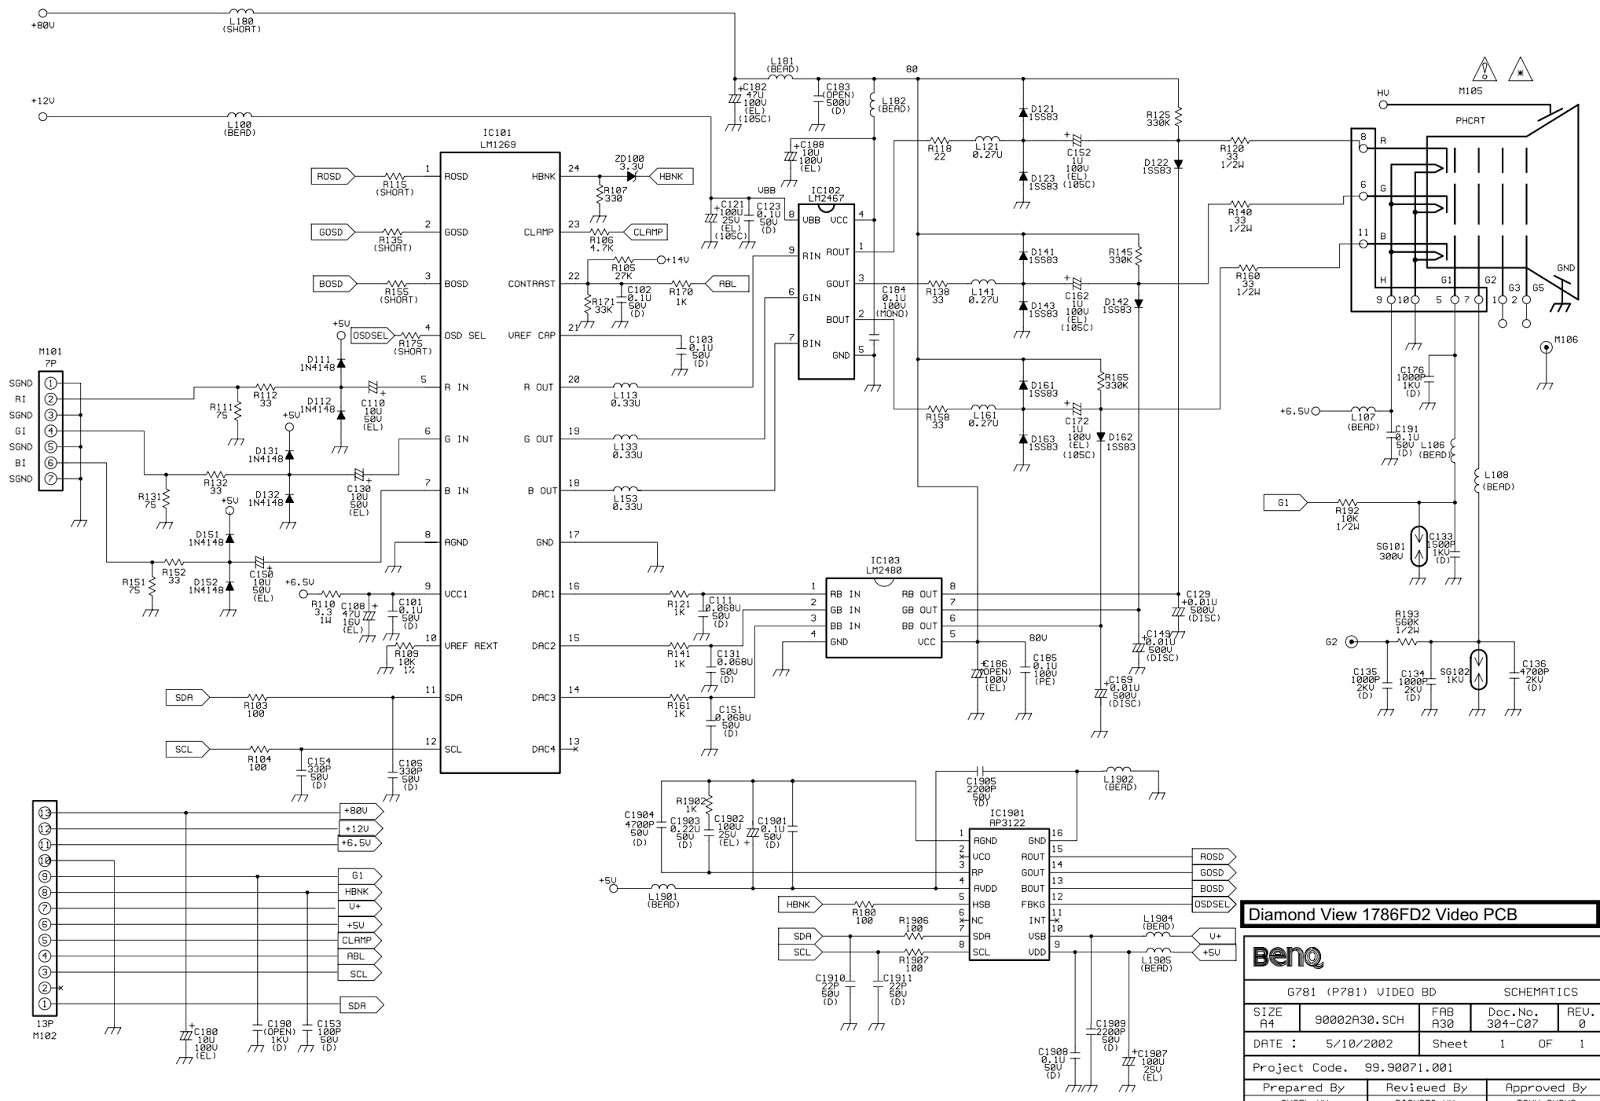 Foscam wiring diagram the gadget professor foscam fiw outdoor benq wiring diagram motorcycle schematic images of benq wiring diagram benq mitsubishi 1786fd2 diamond view crt freerunsca Image collections